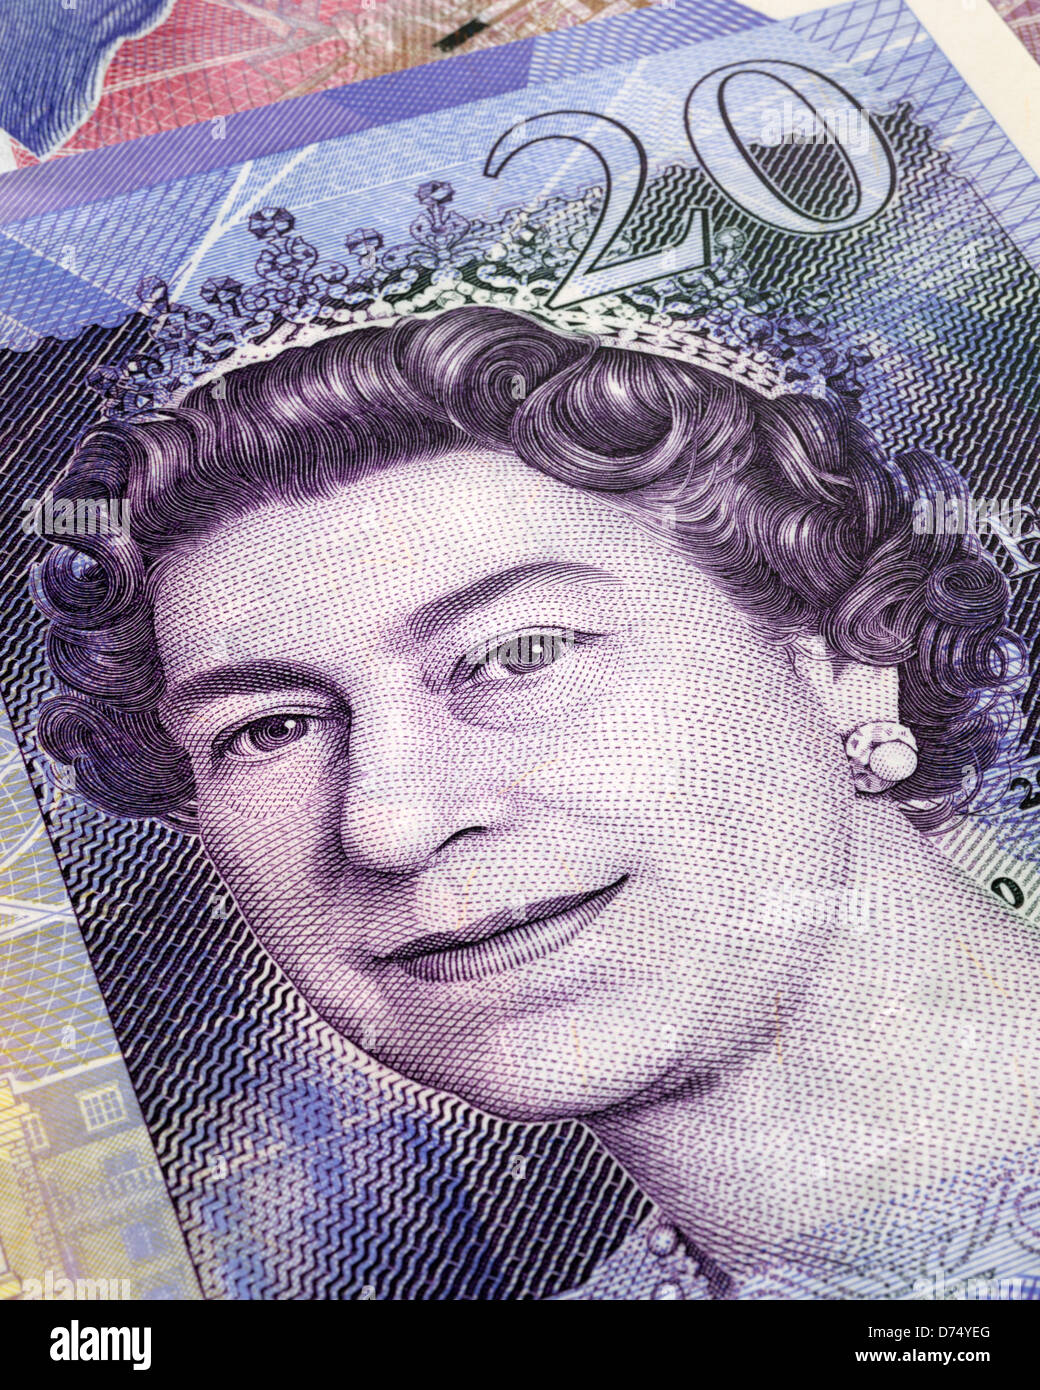 Queen on a £20 pound note close up - Stock Image